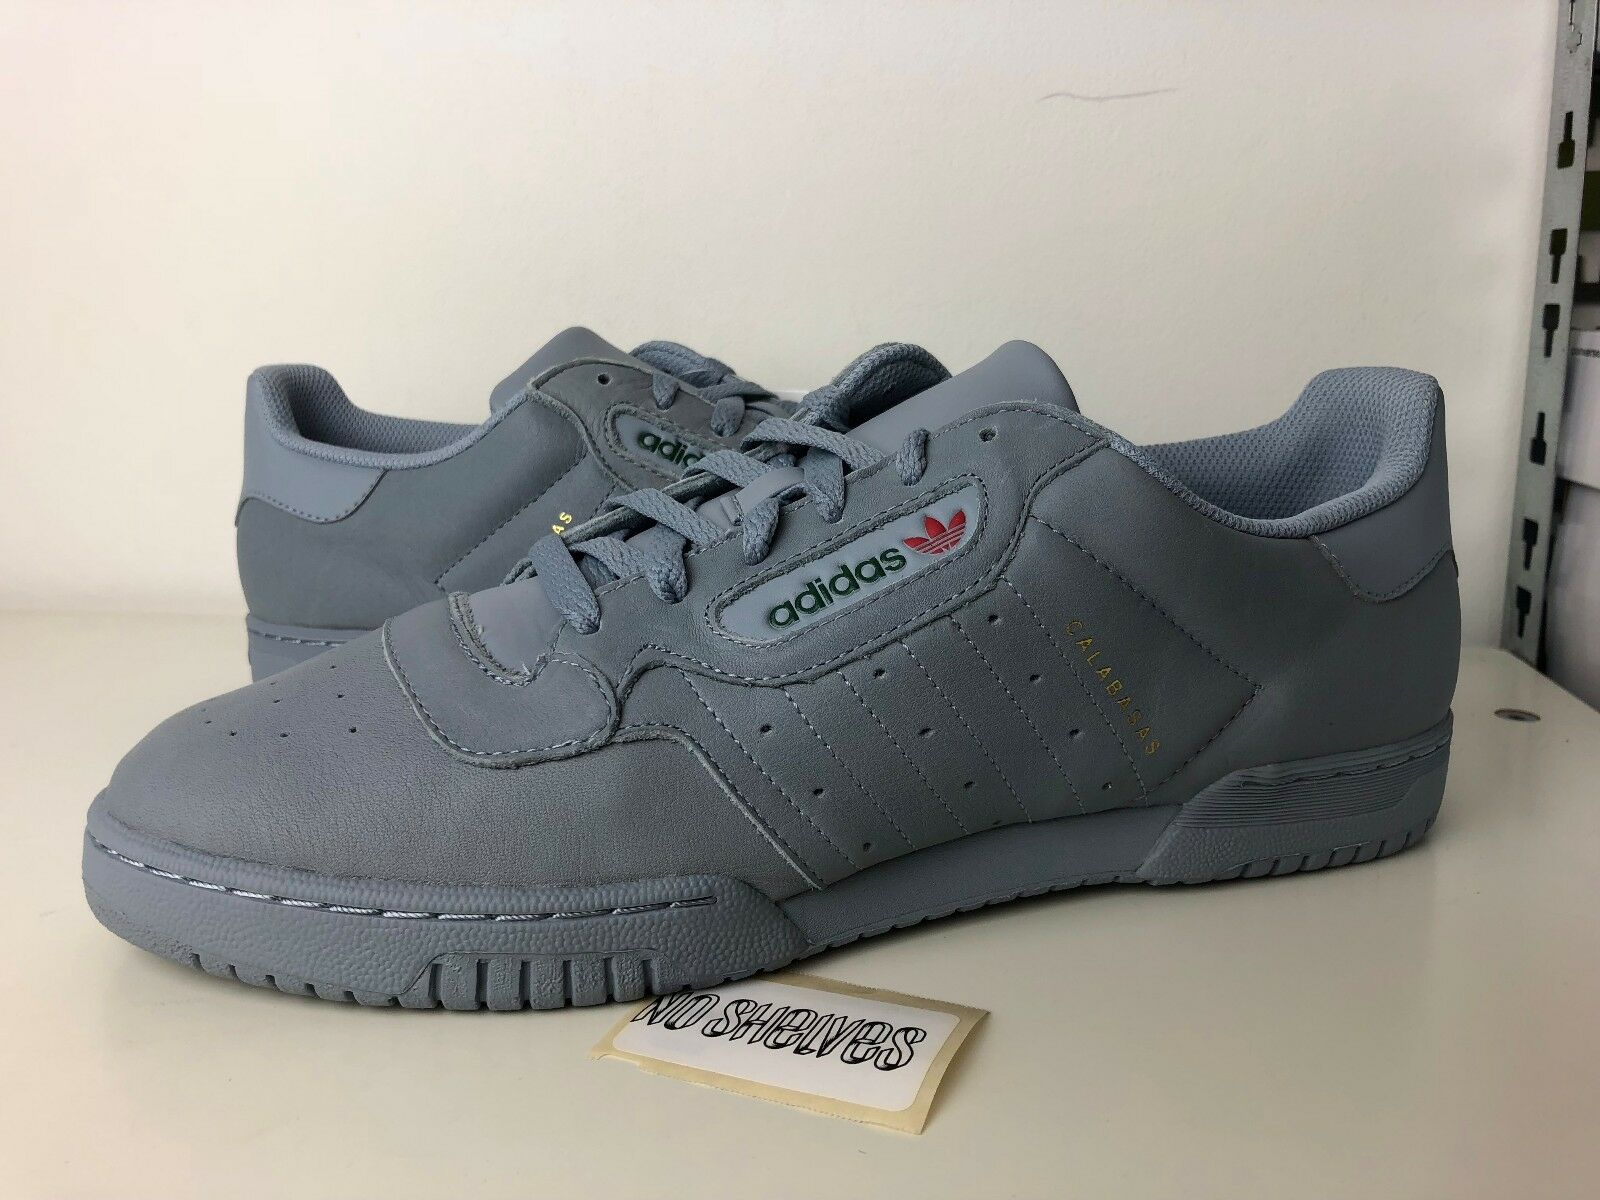 Adidas Yeezy Calabasas Powerphase Grey CG6422 Gray Kanye West size 4 12.5 us